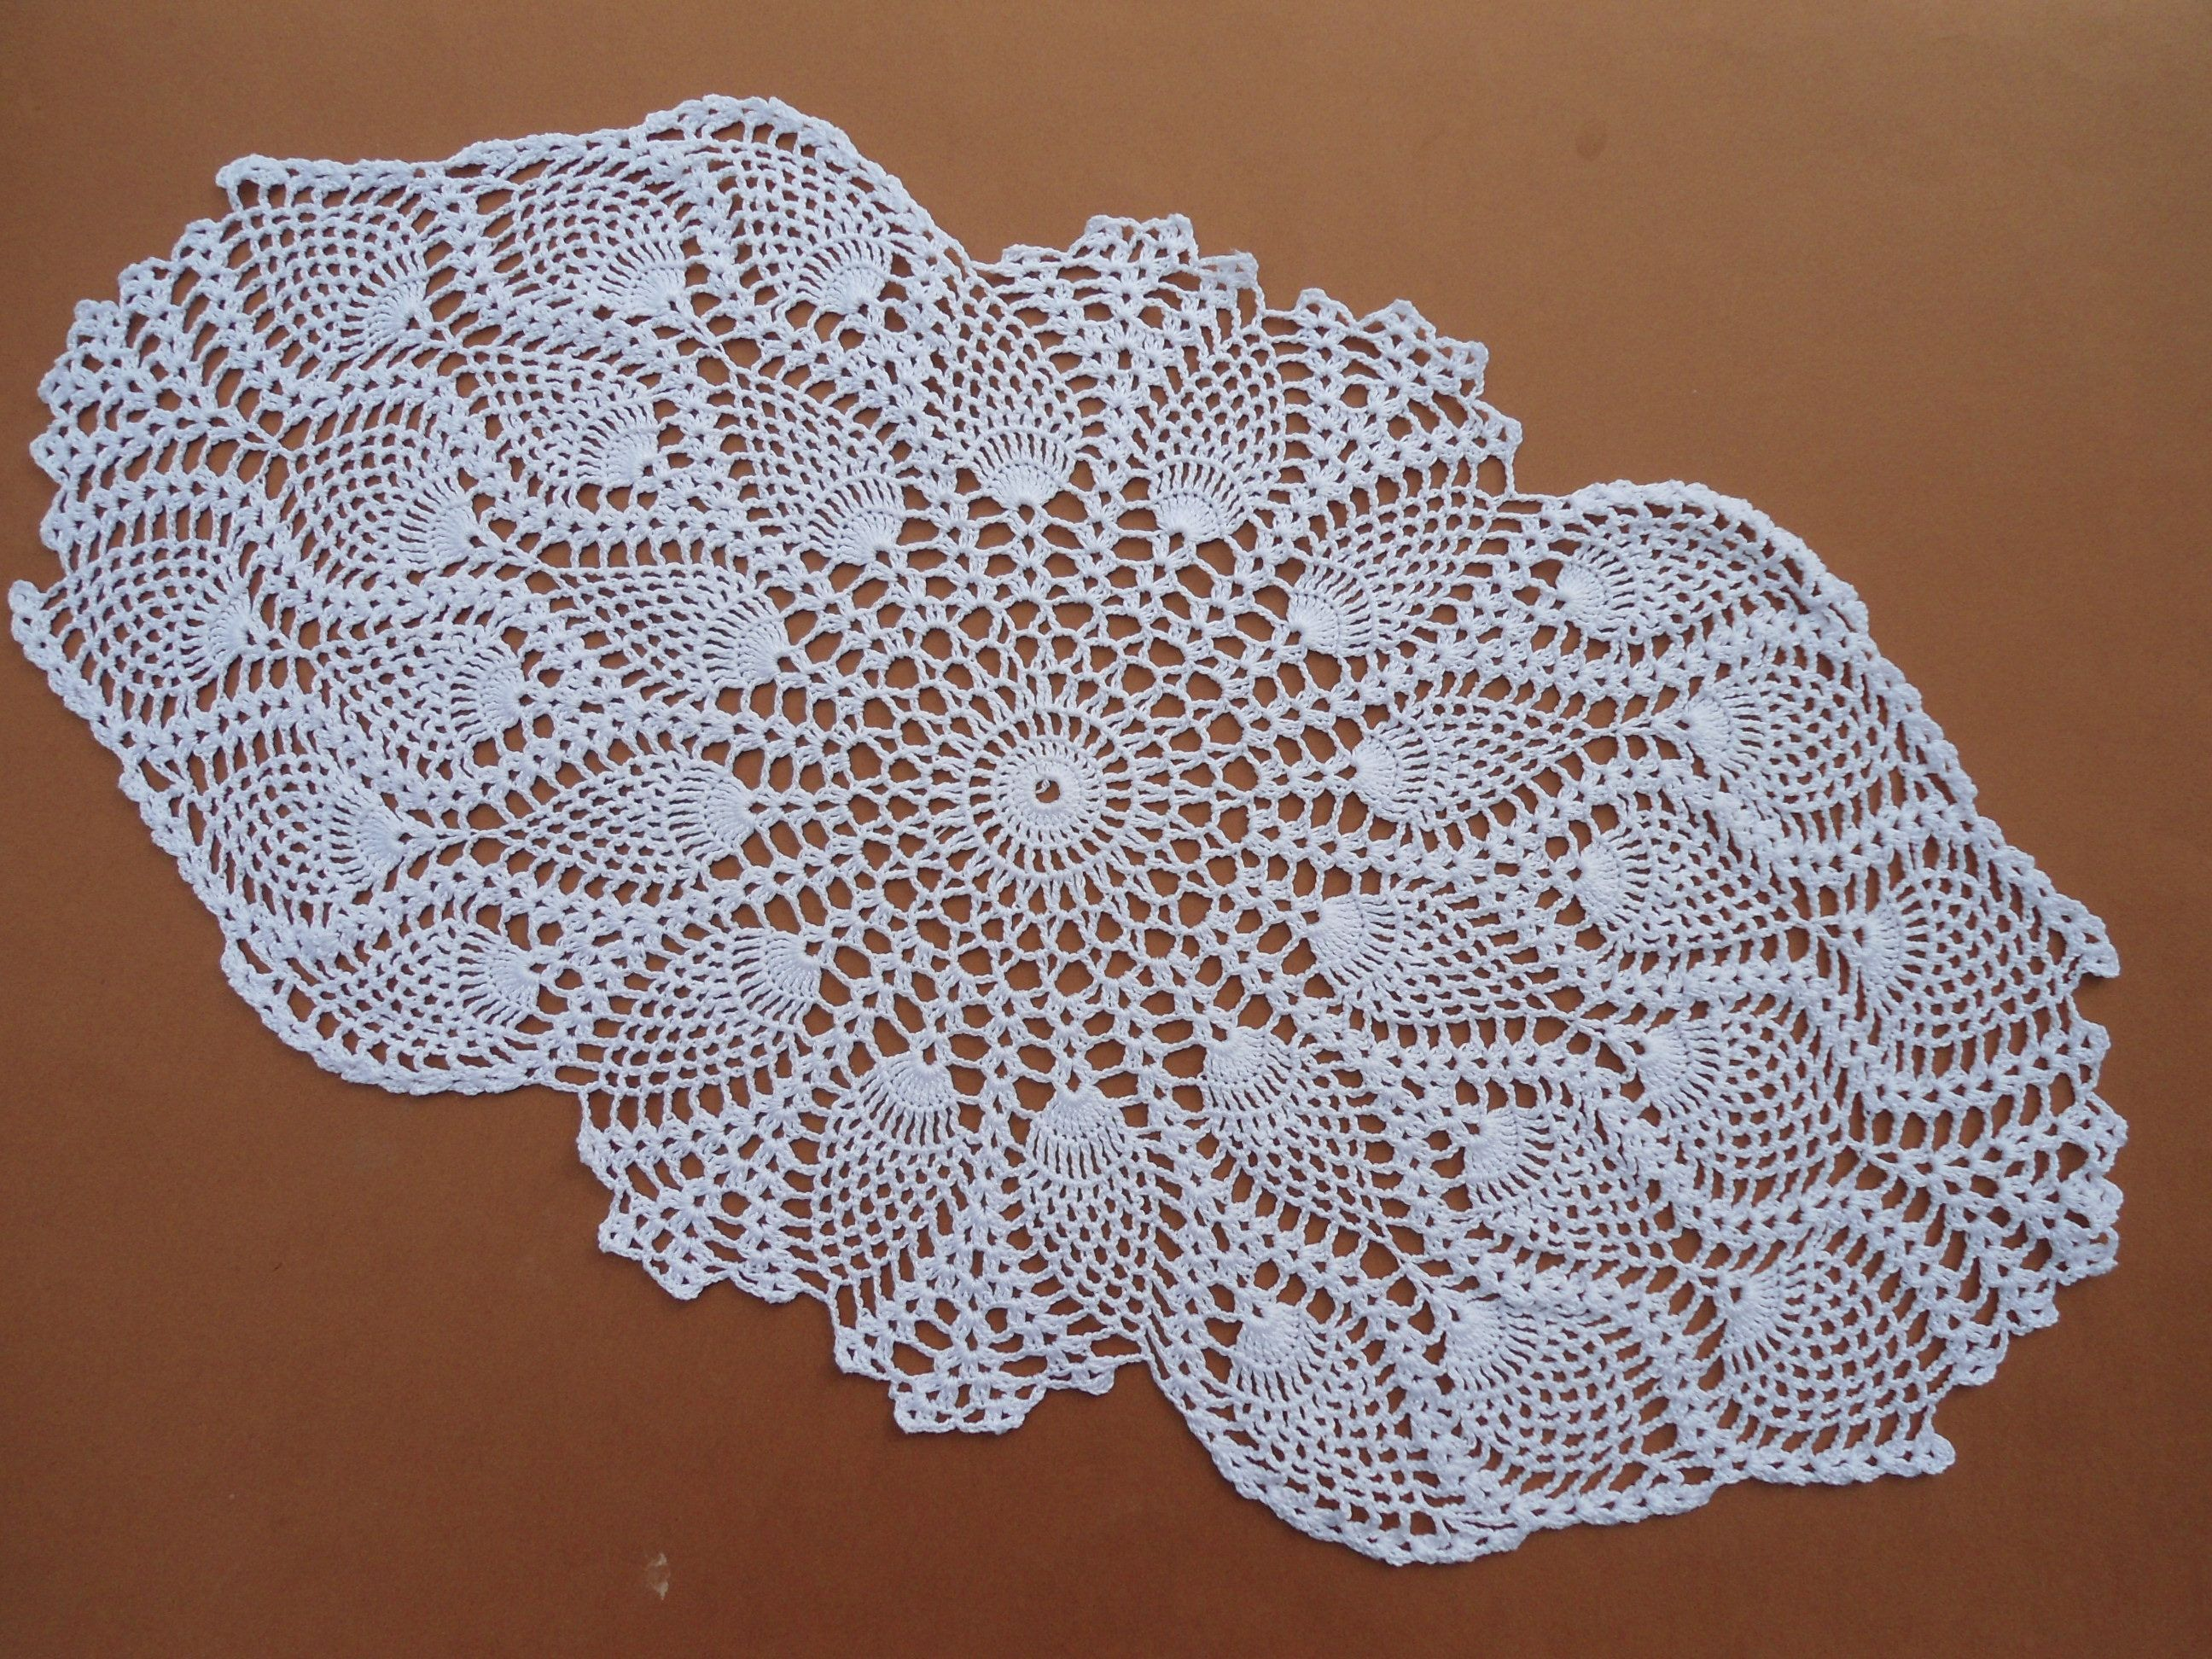 Crochet exquisite openwork napkins for home. Detailed pattern with a pattern and description for beginners